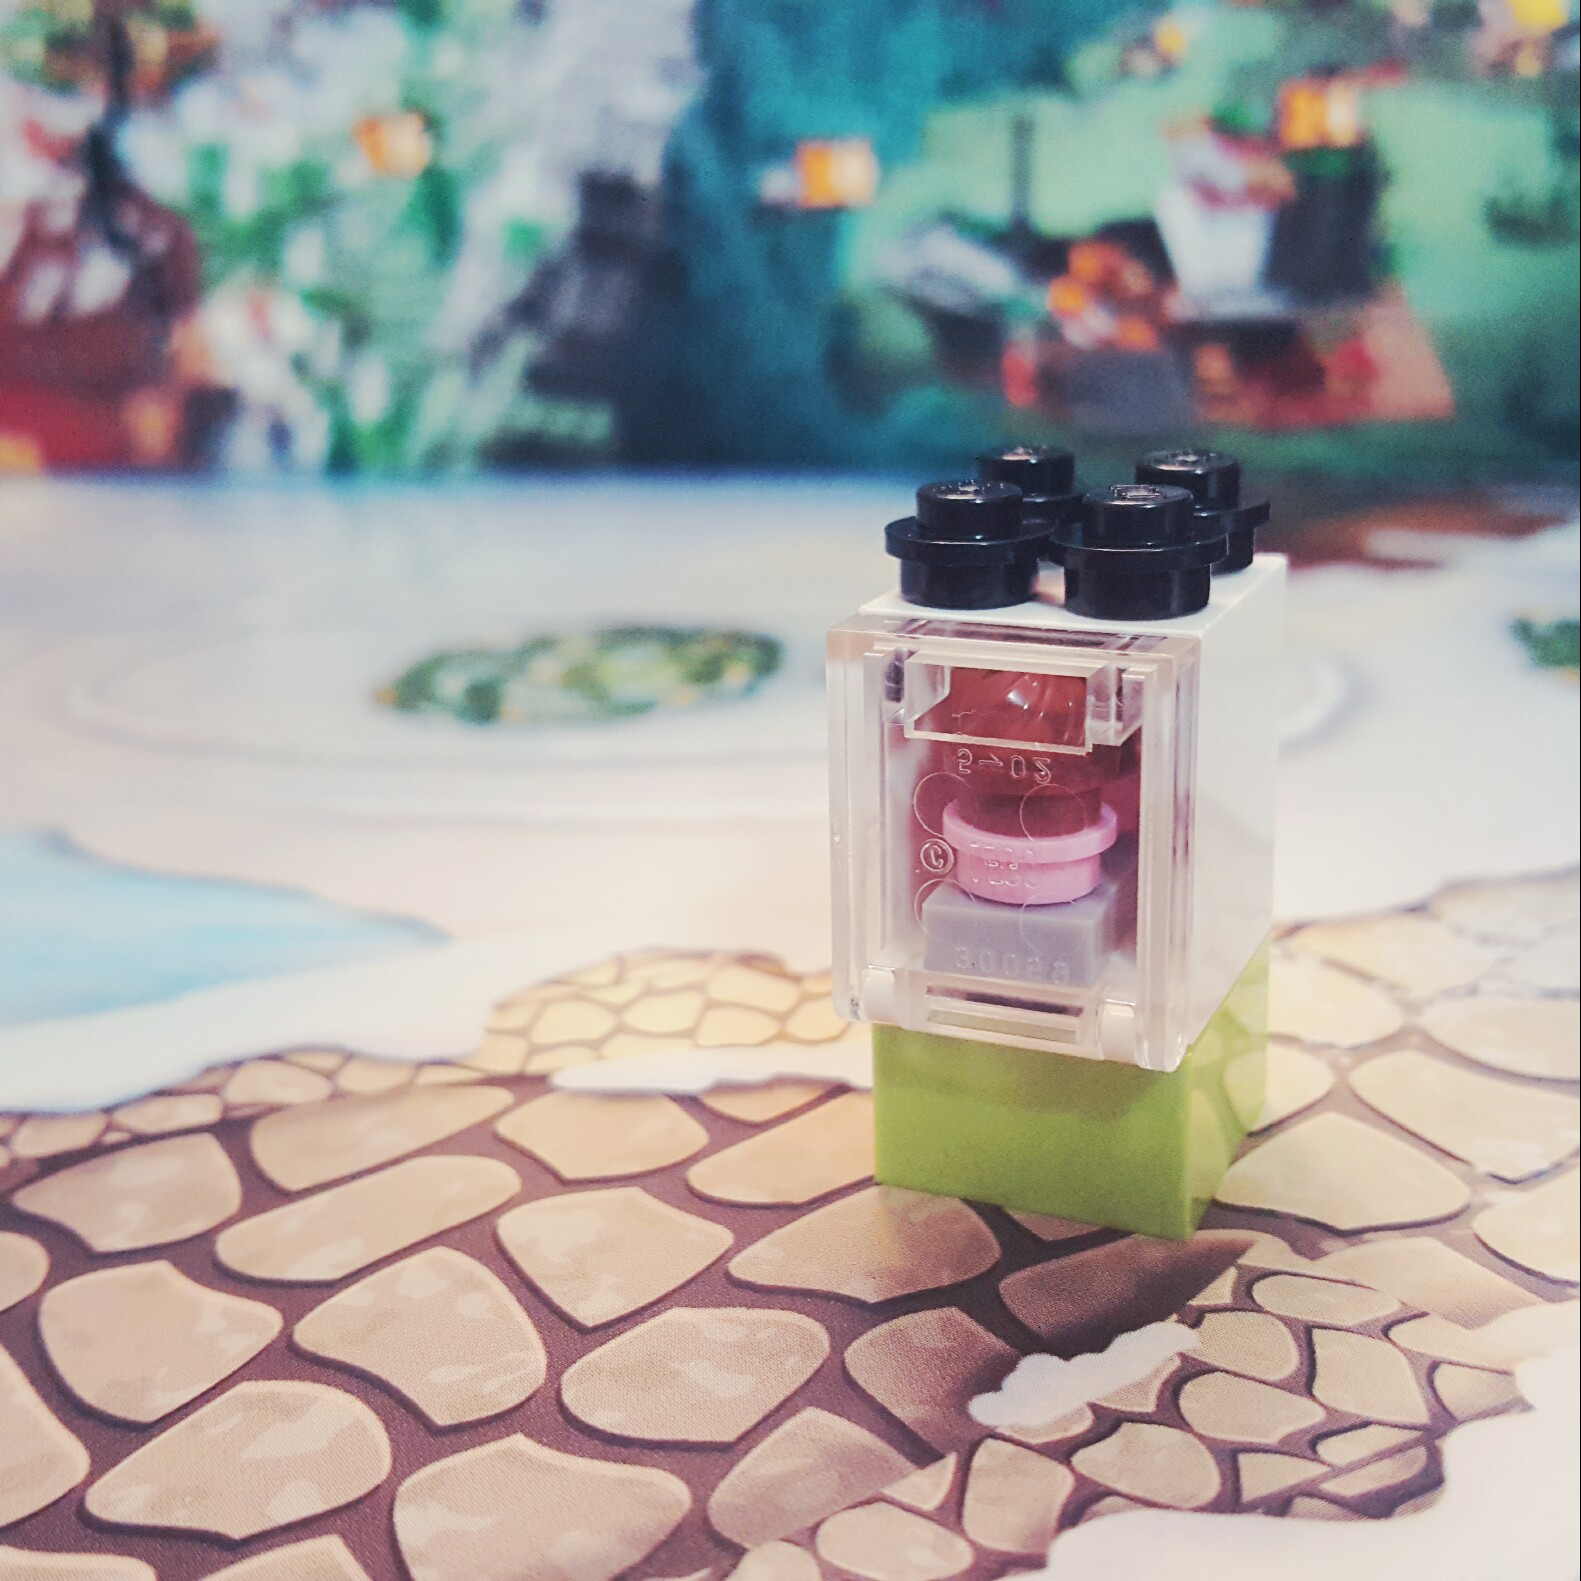 """""""Smells good!"""" - Day 14 Cupcake Oven from LEGO Friends Advent Calendar"""